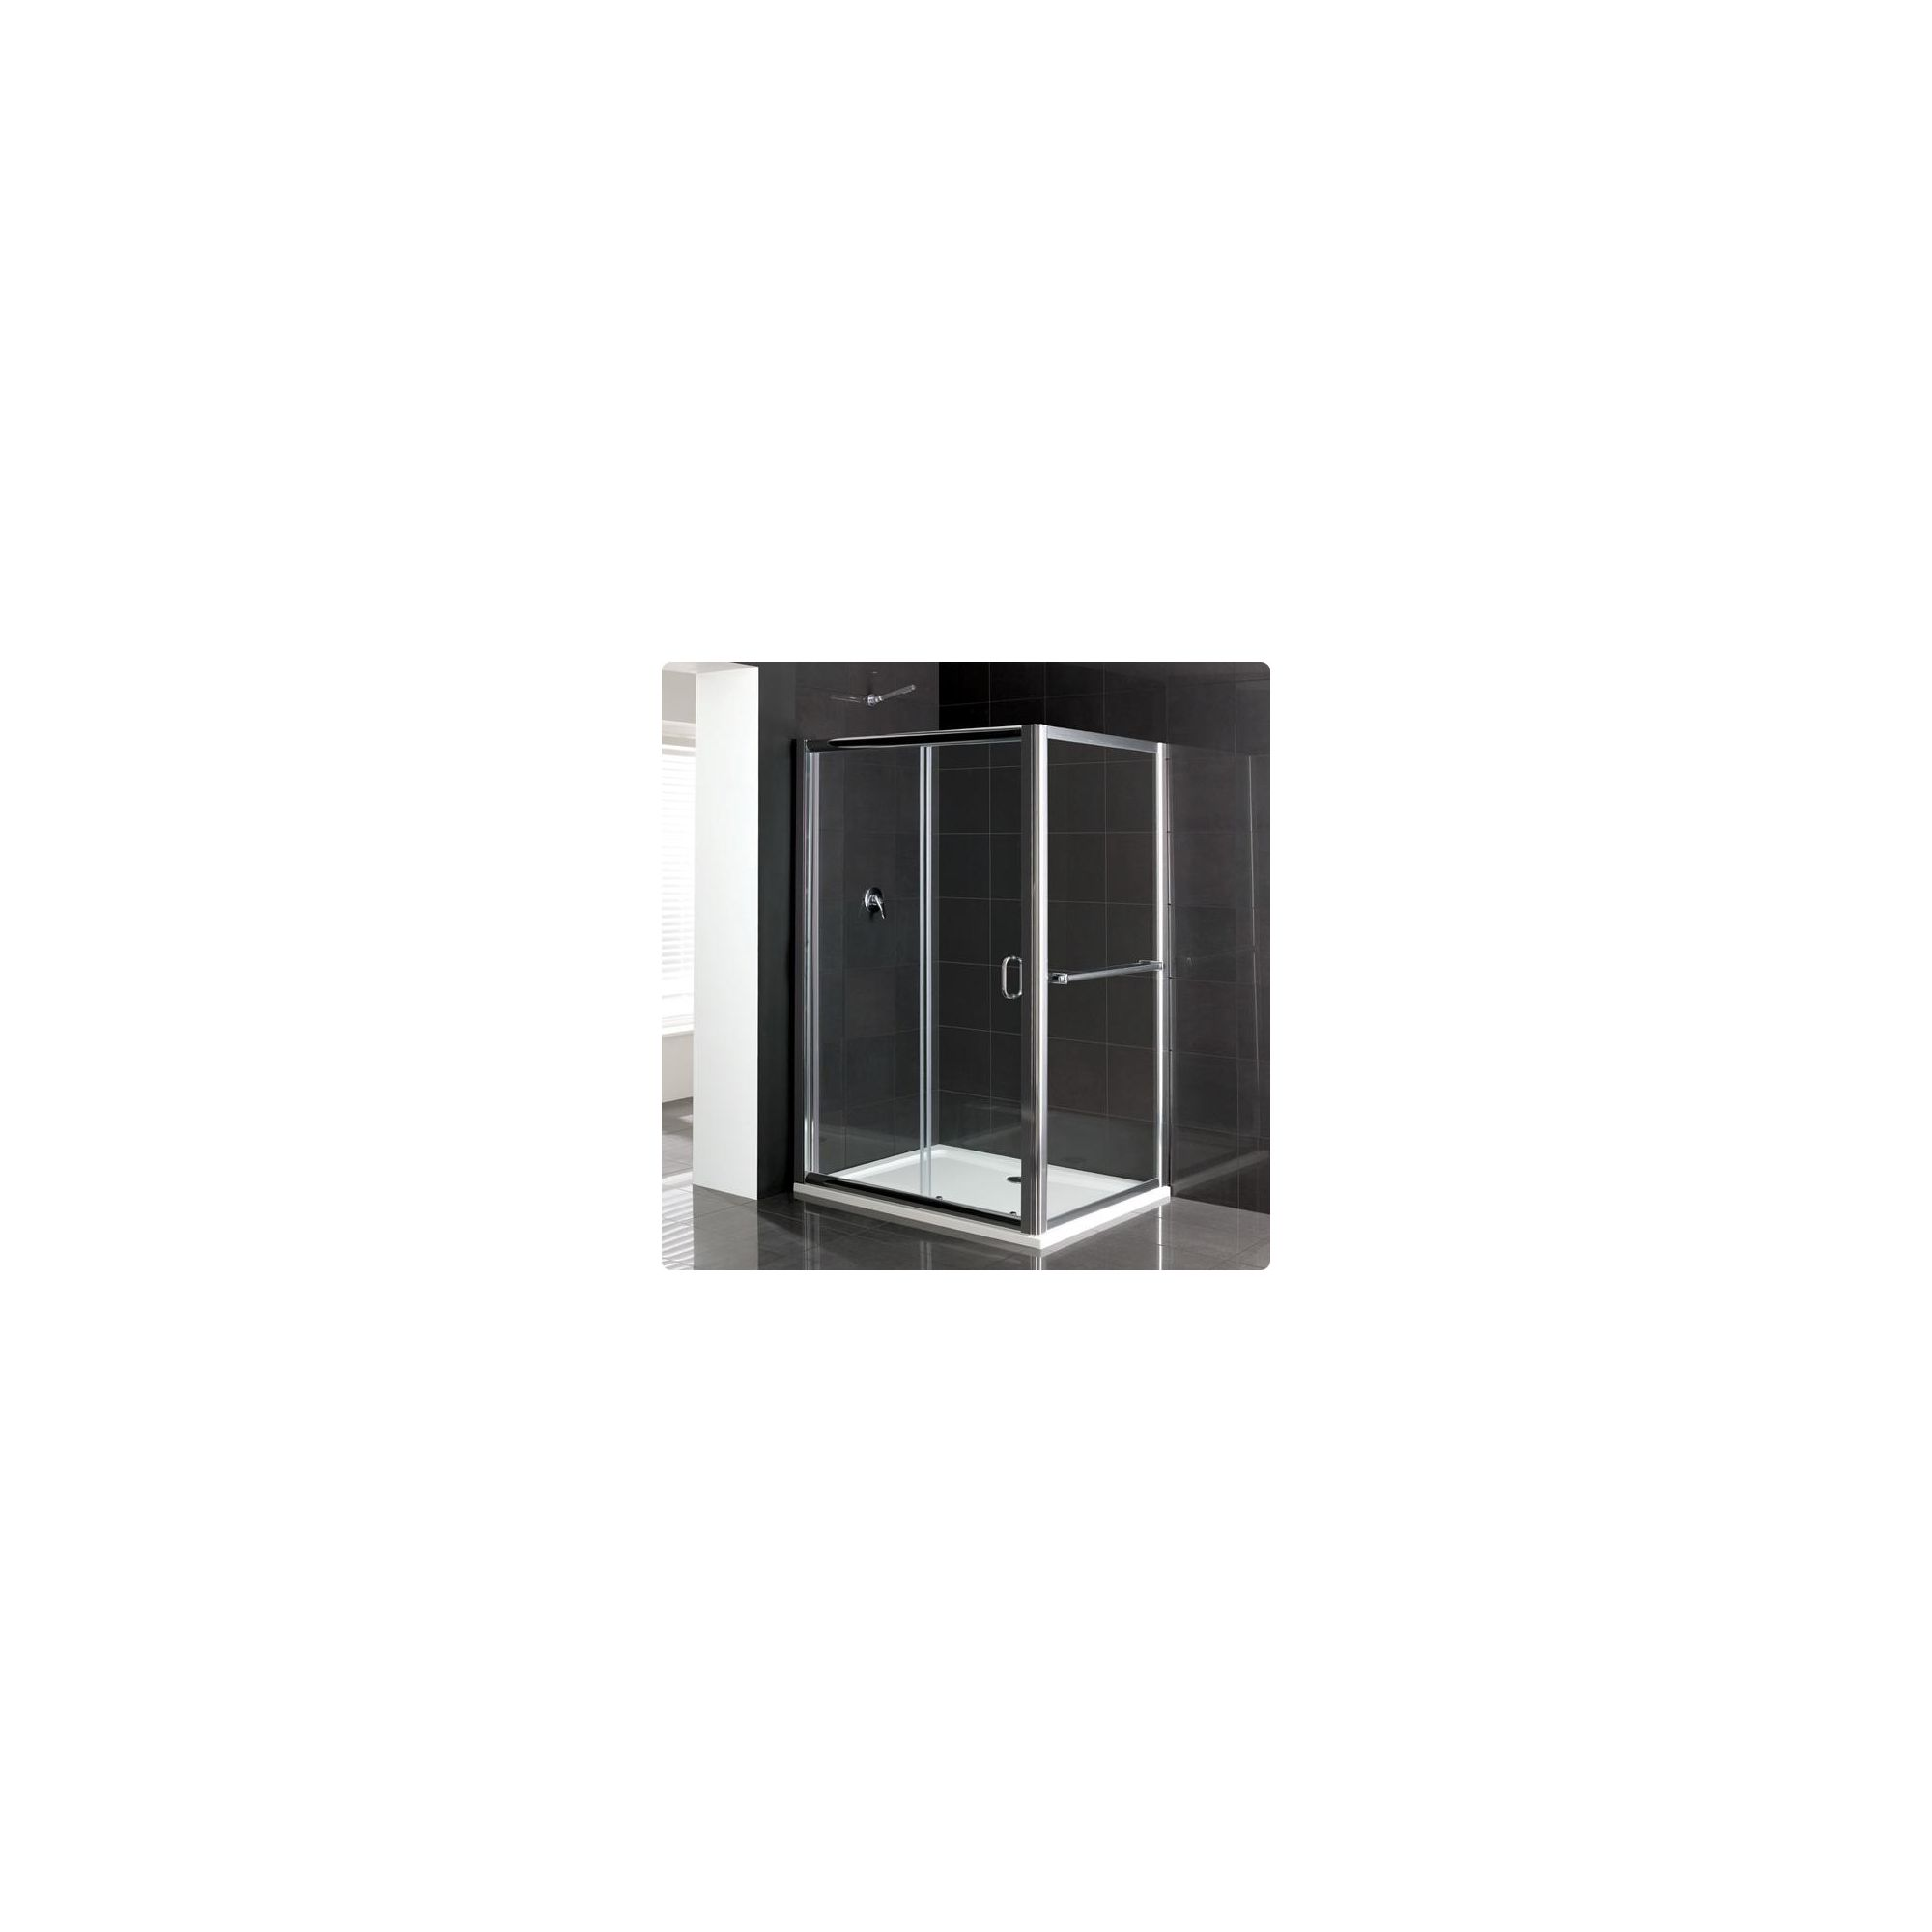 Duchy Elite Silver Sliding Door Shower Enclosure with Towel Rail, 1200mm x 700mm, Standard Tray, 6mm Glass at Tesco Direct